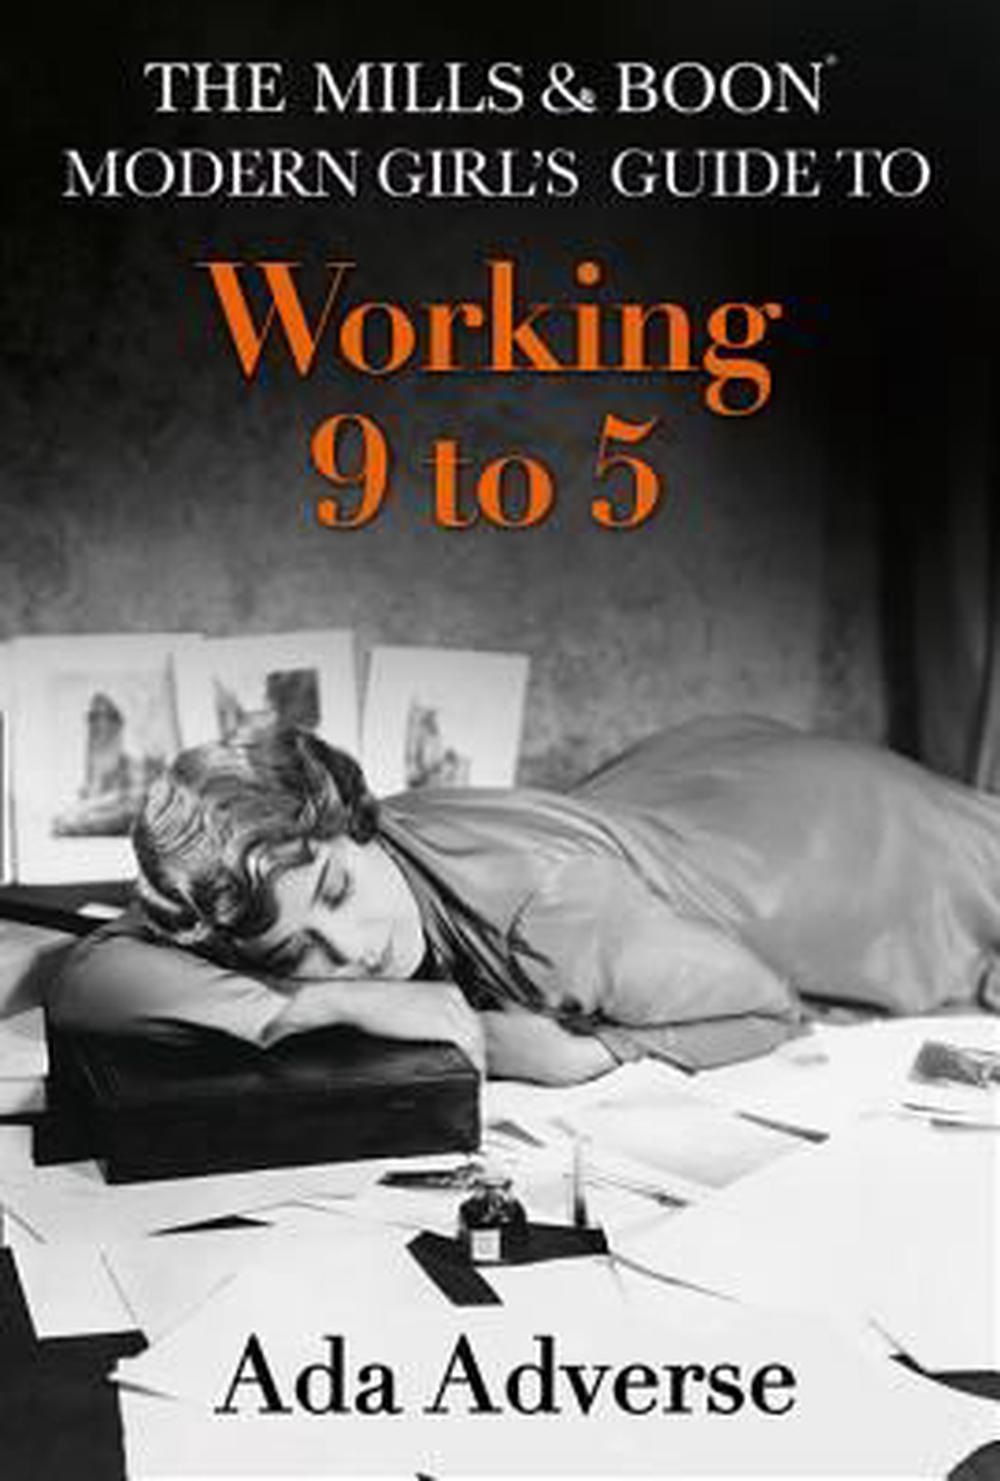 The Mills & Boon Modern Girl's Guide to: Working 9-5 by Ada Adverse, ISBN: 9780008212339